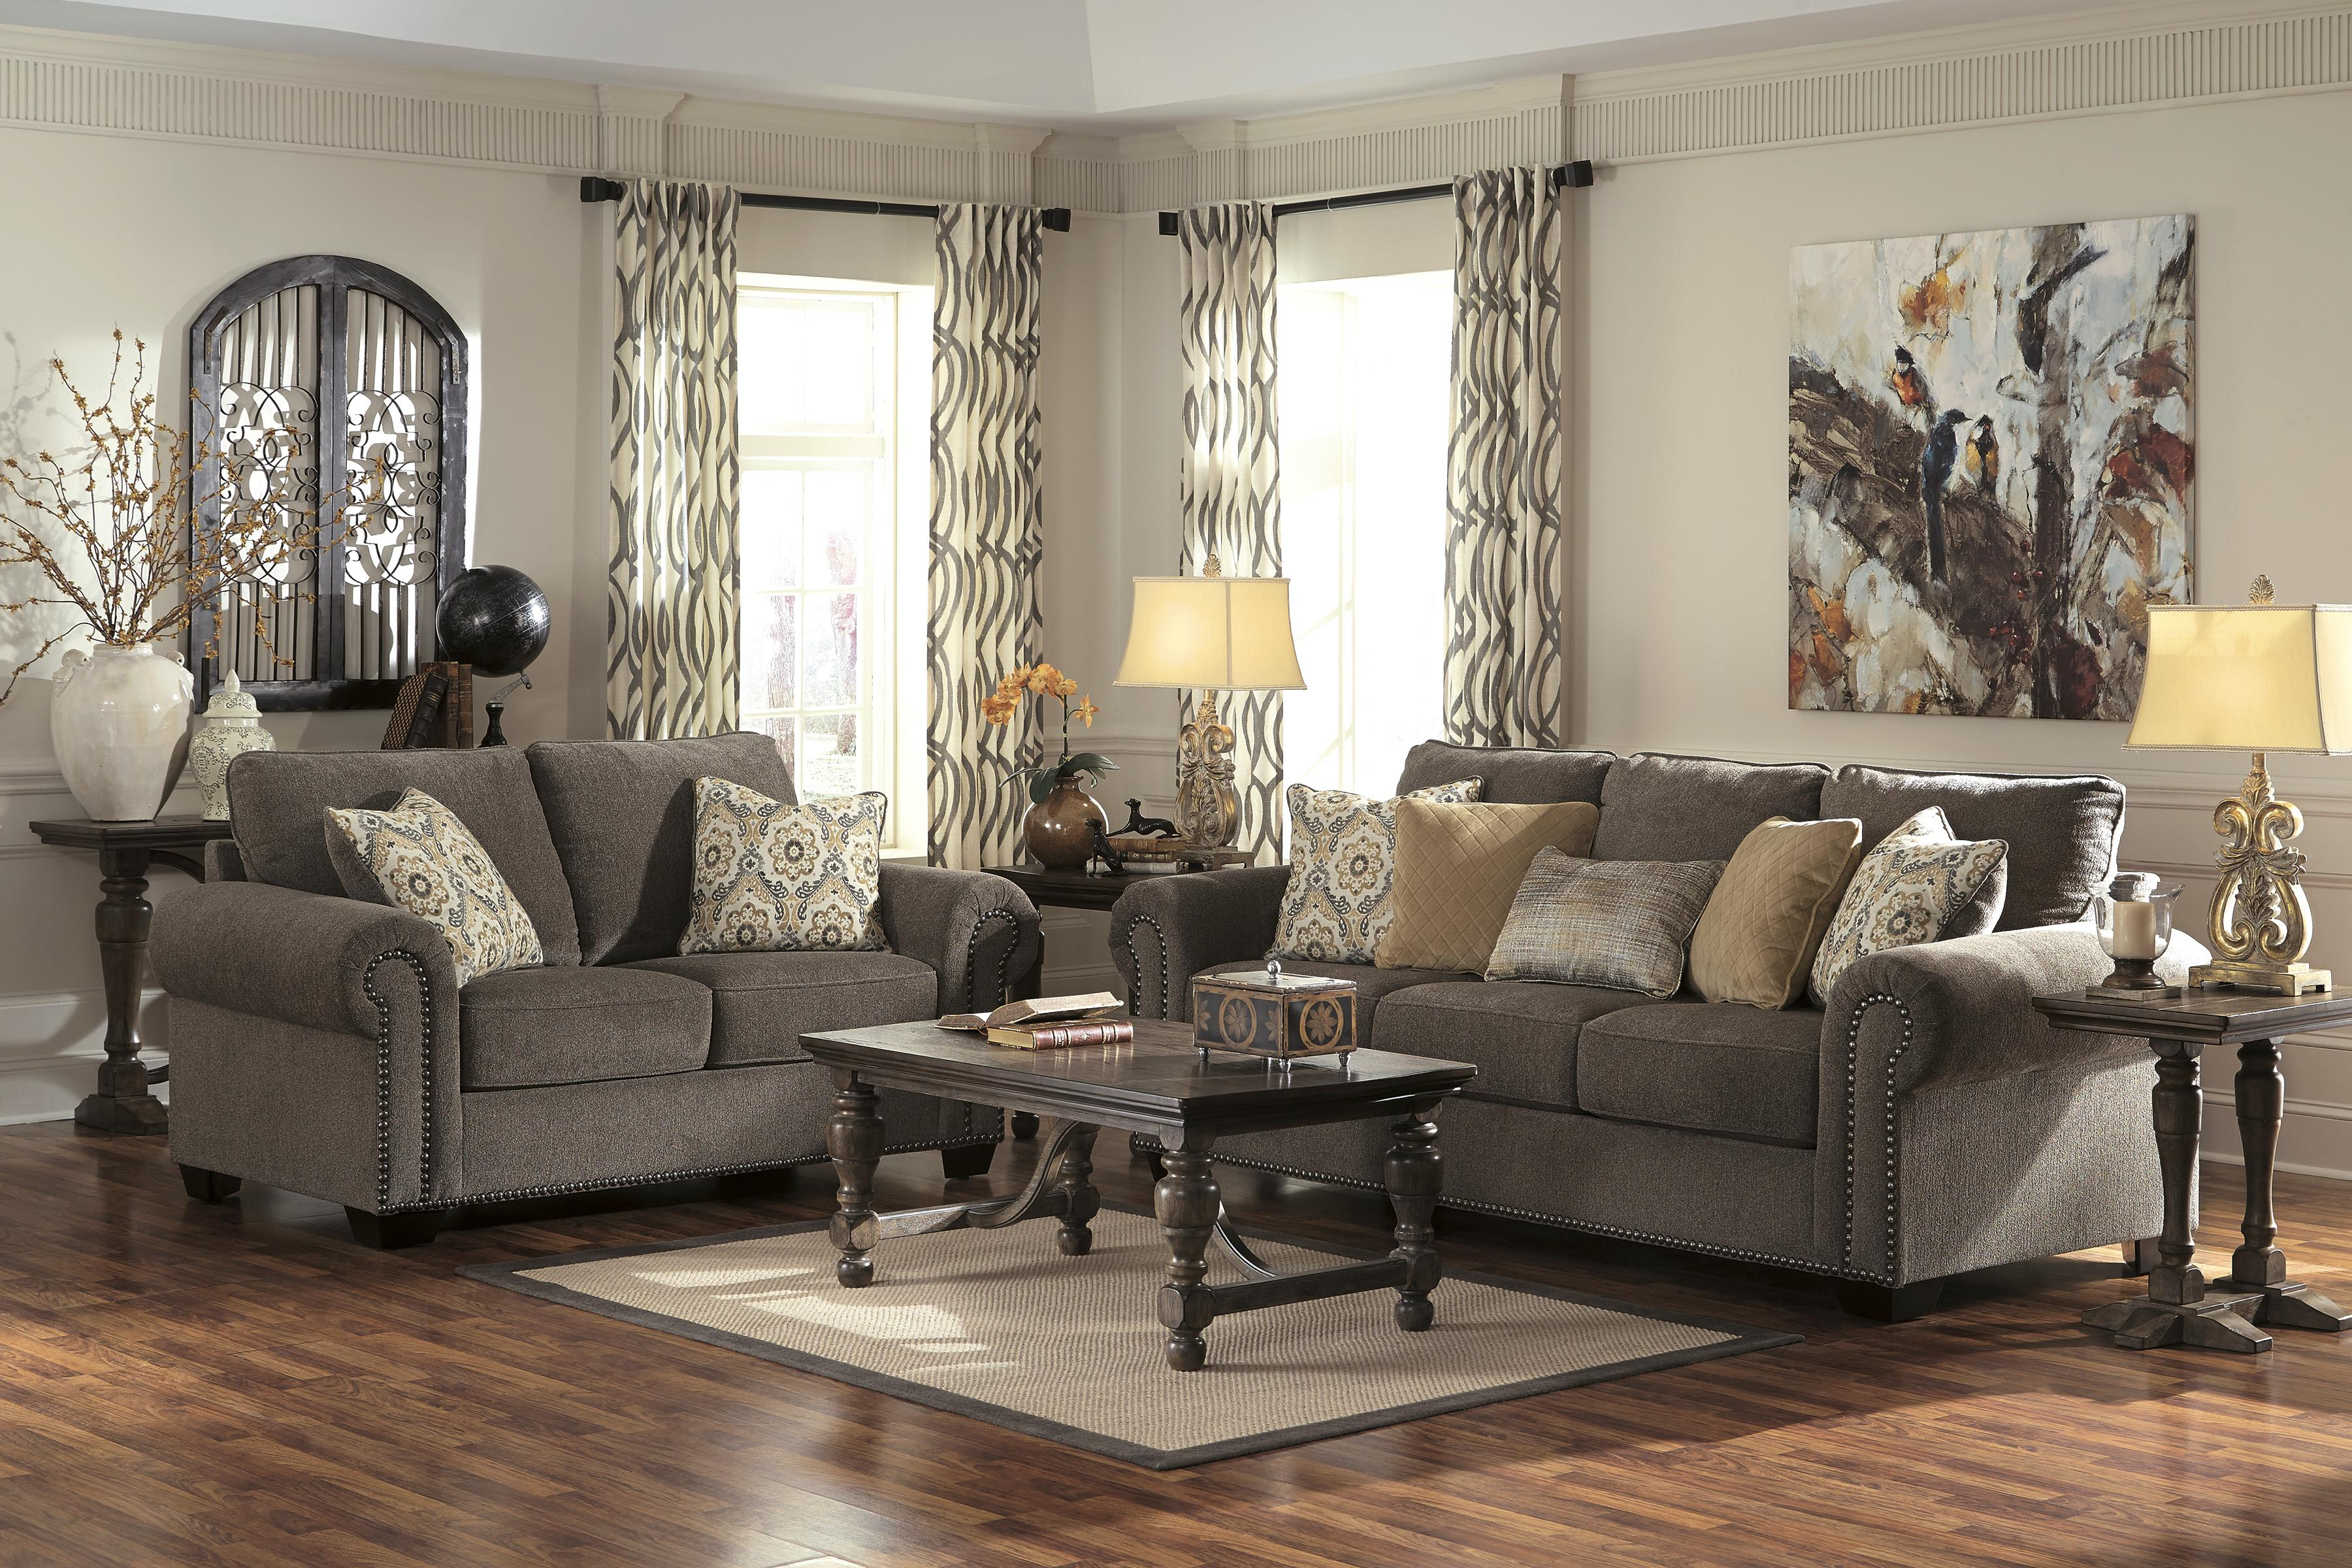 Benchcraft Emelen Stationary Living Room Group - Item Number: 45600 Living Room Group 1